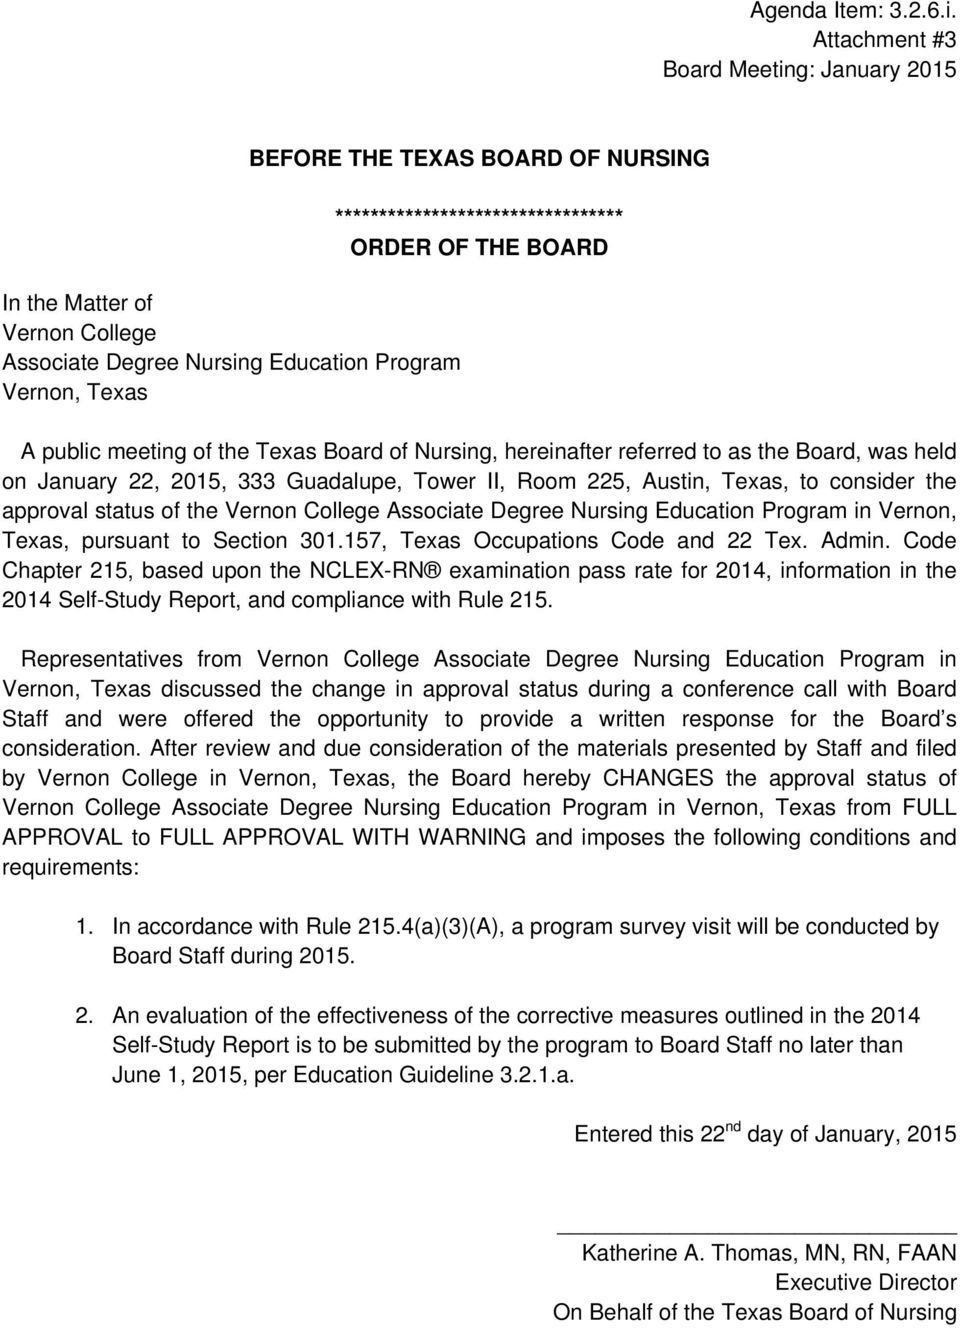 ORDER OF THE BOARD A public meeting of the Texas Board of Nursing, hereinafter referred to as the Board, was held on January 22, 2015, 333 Guadalupe, Tower II, Room 225, Austin, Texas, to consider